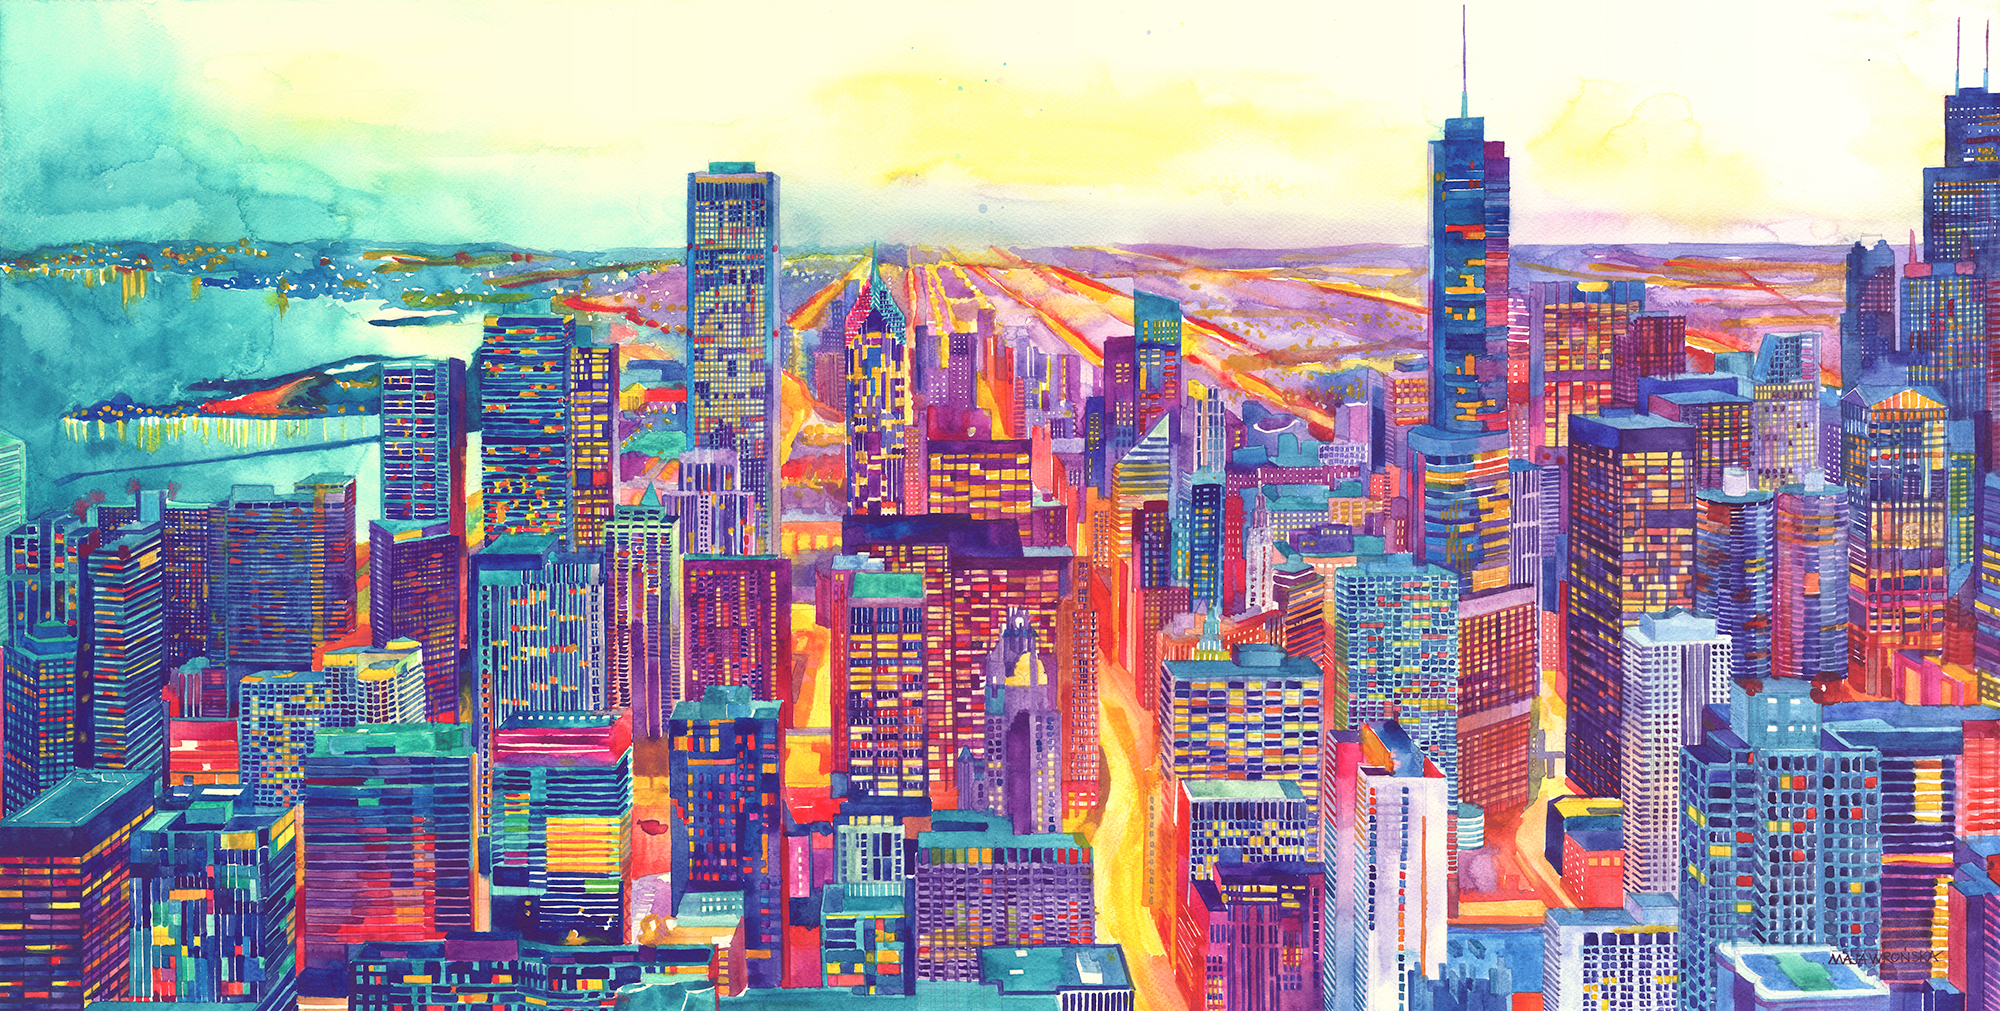 Watercolor of the city of Chicago